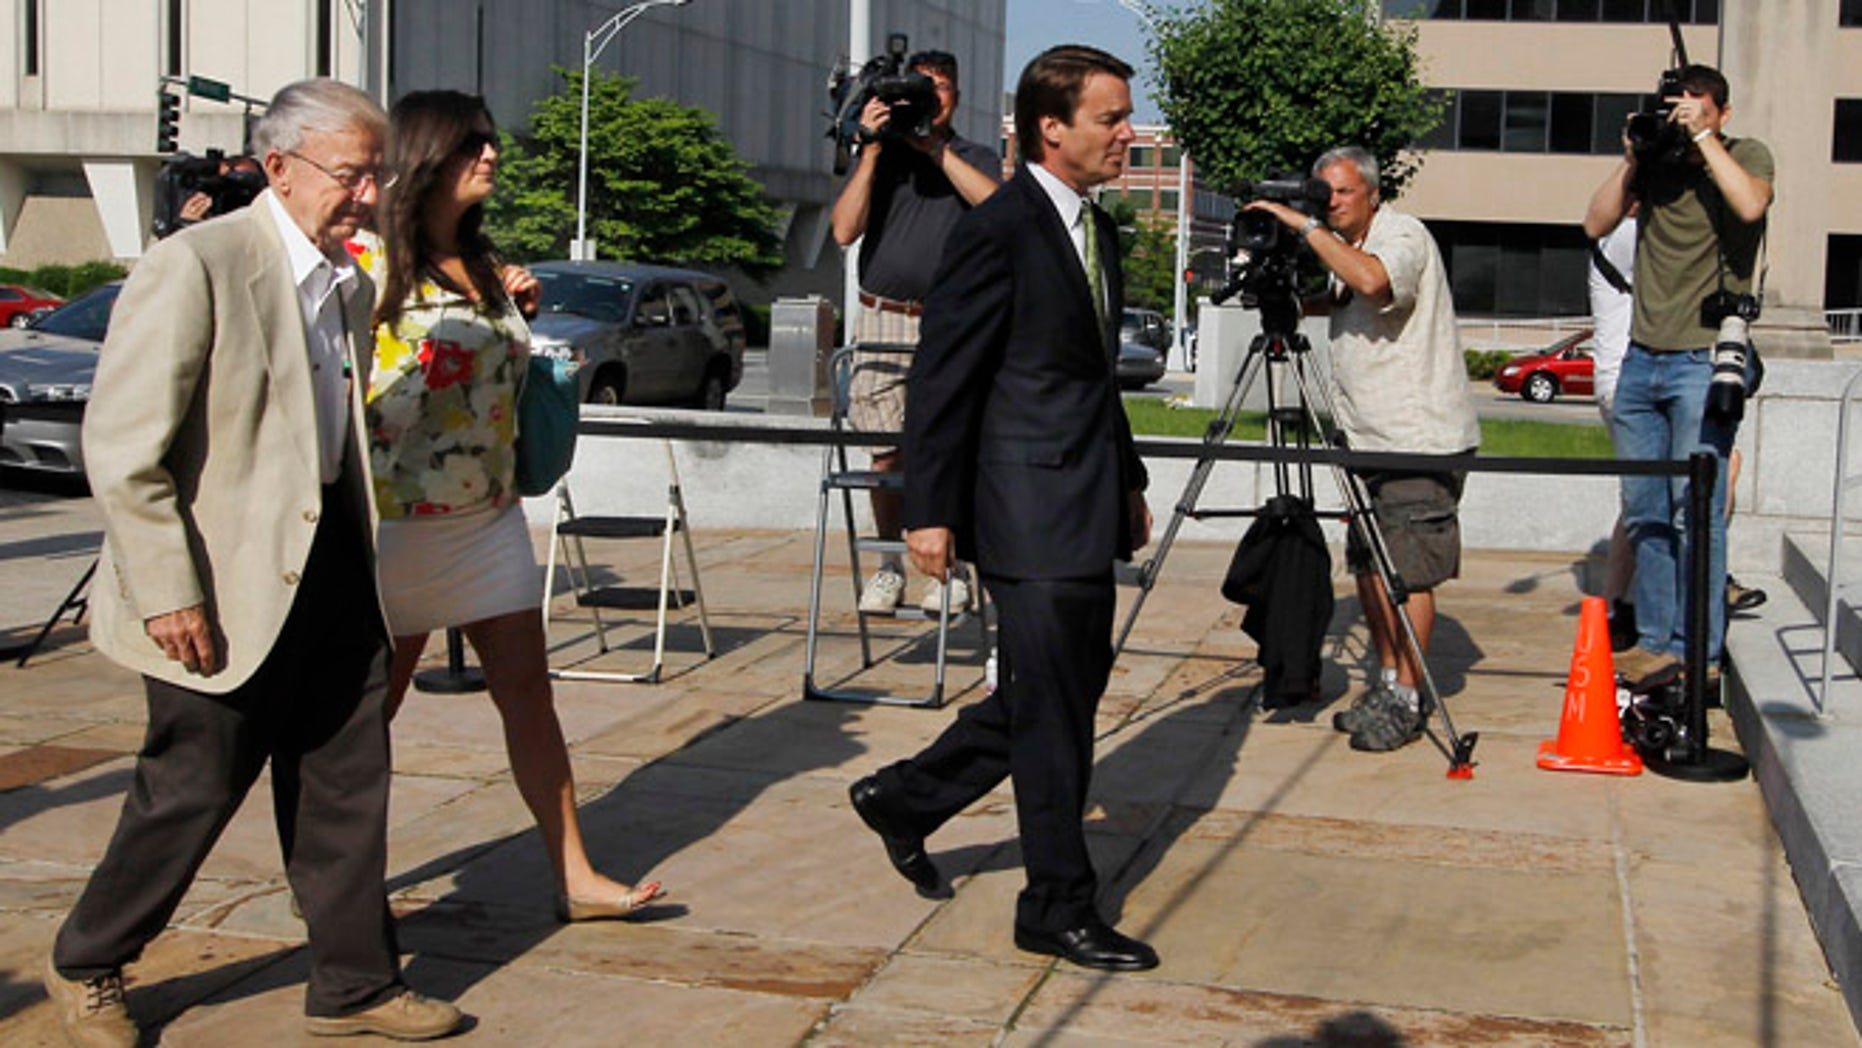 May 2, 2012: John Edwards, right, walks with his father Wallace and daughter Cate into the Federal Courthouse in Greensboro, N.C.